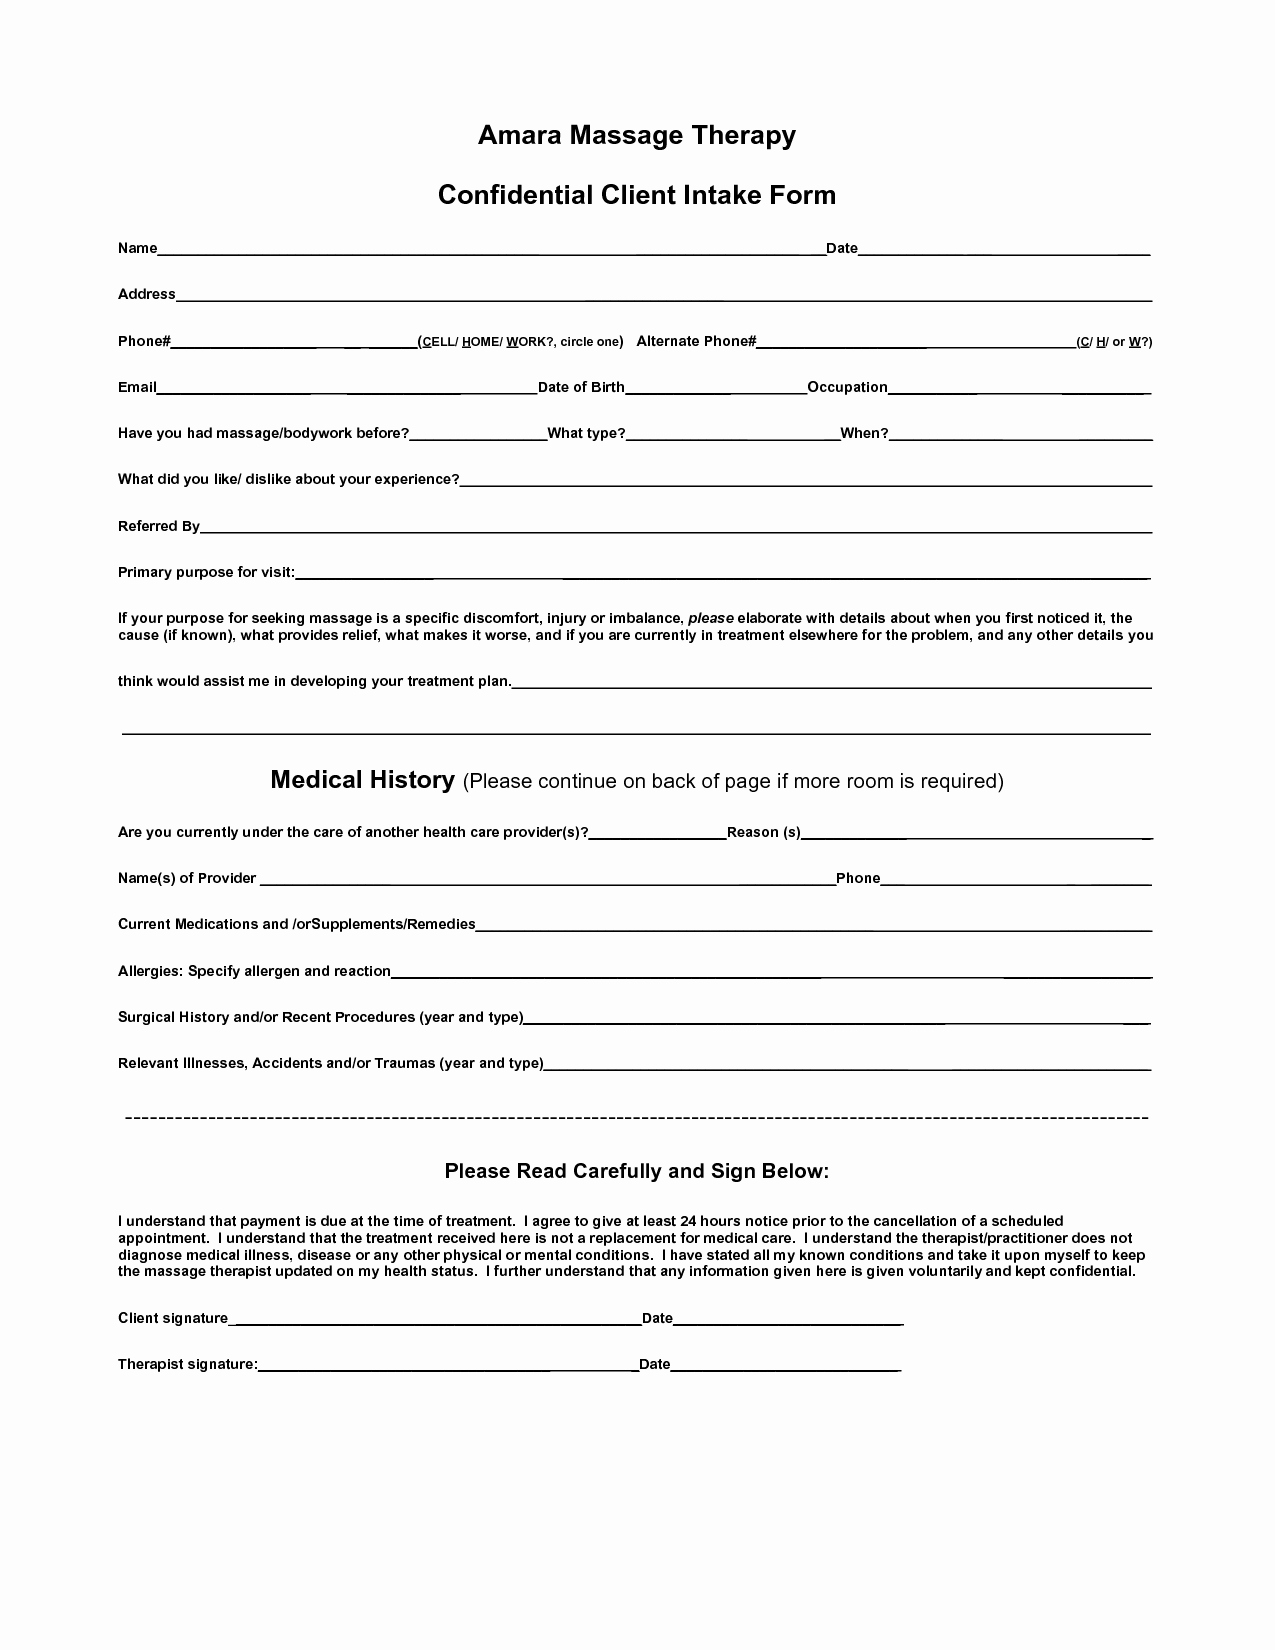 Counseling Intake form Template Unique Body Intake form Clipart Clipart Suggest